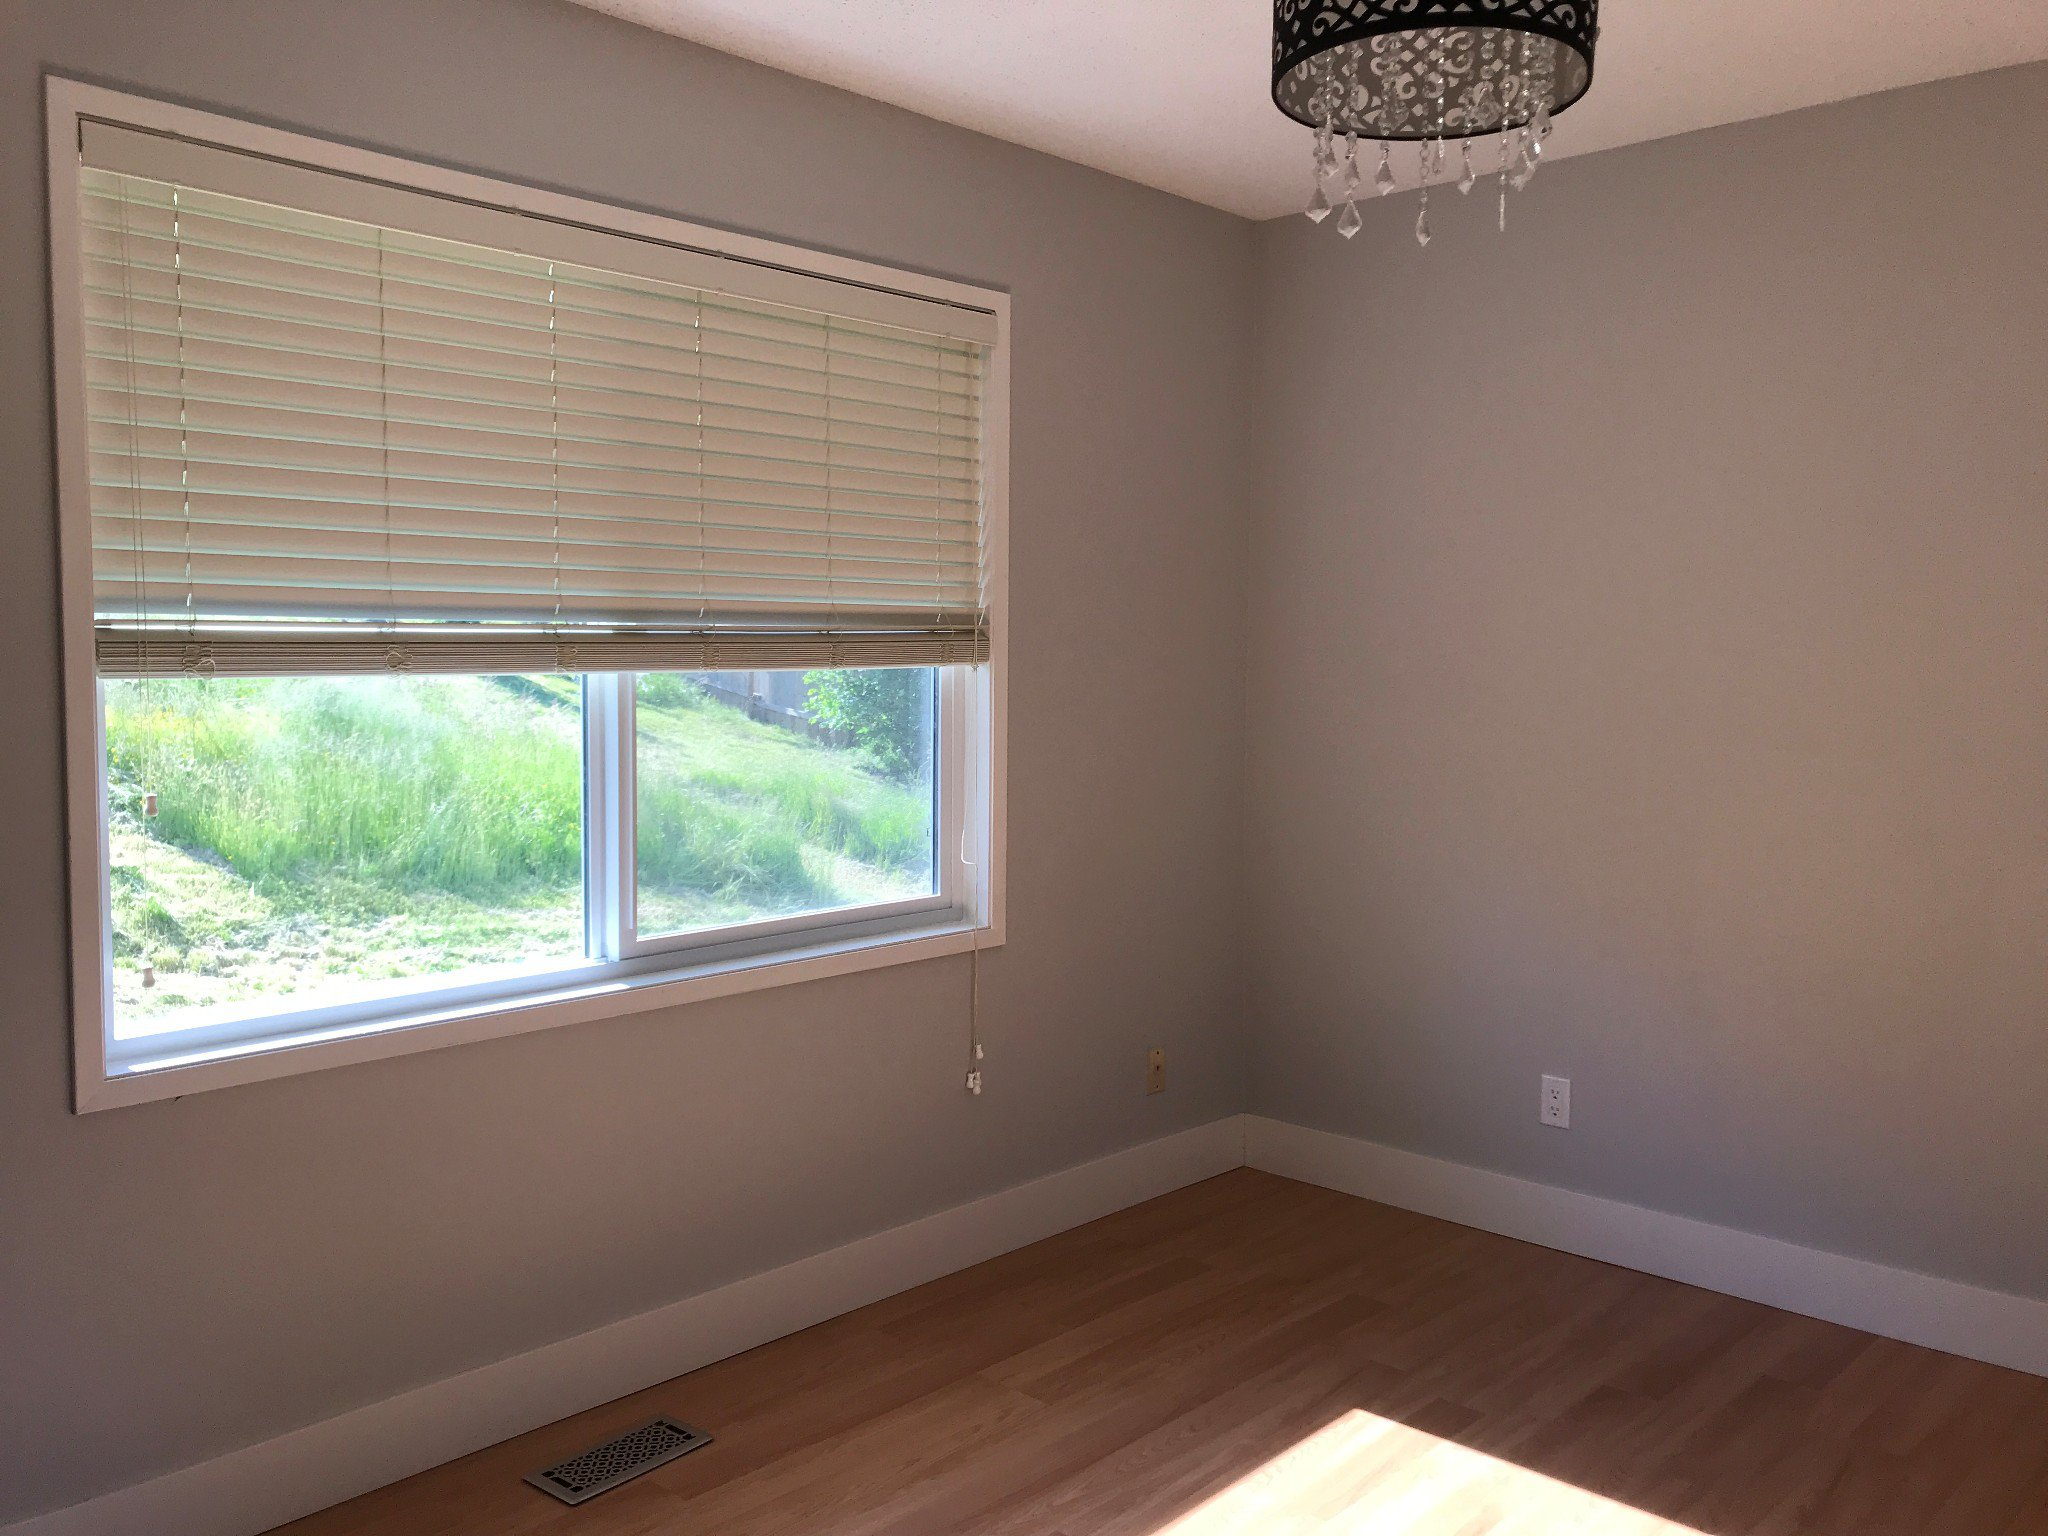 Photo 9: Photos: 34694 Dewdney Trunk Rd. in Mission: House for rent